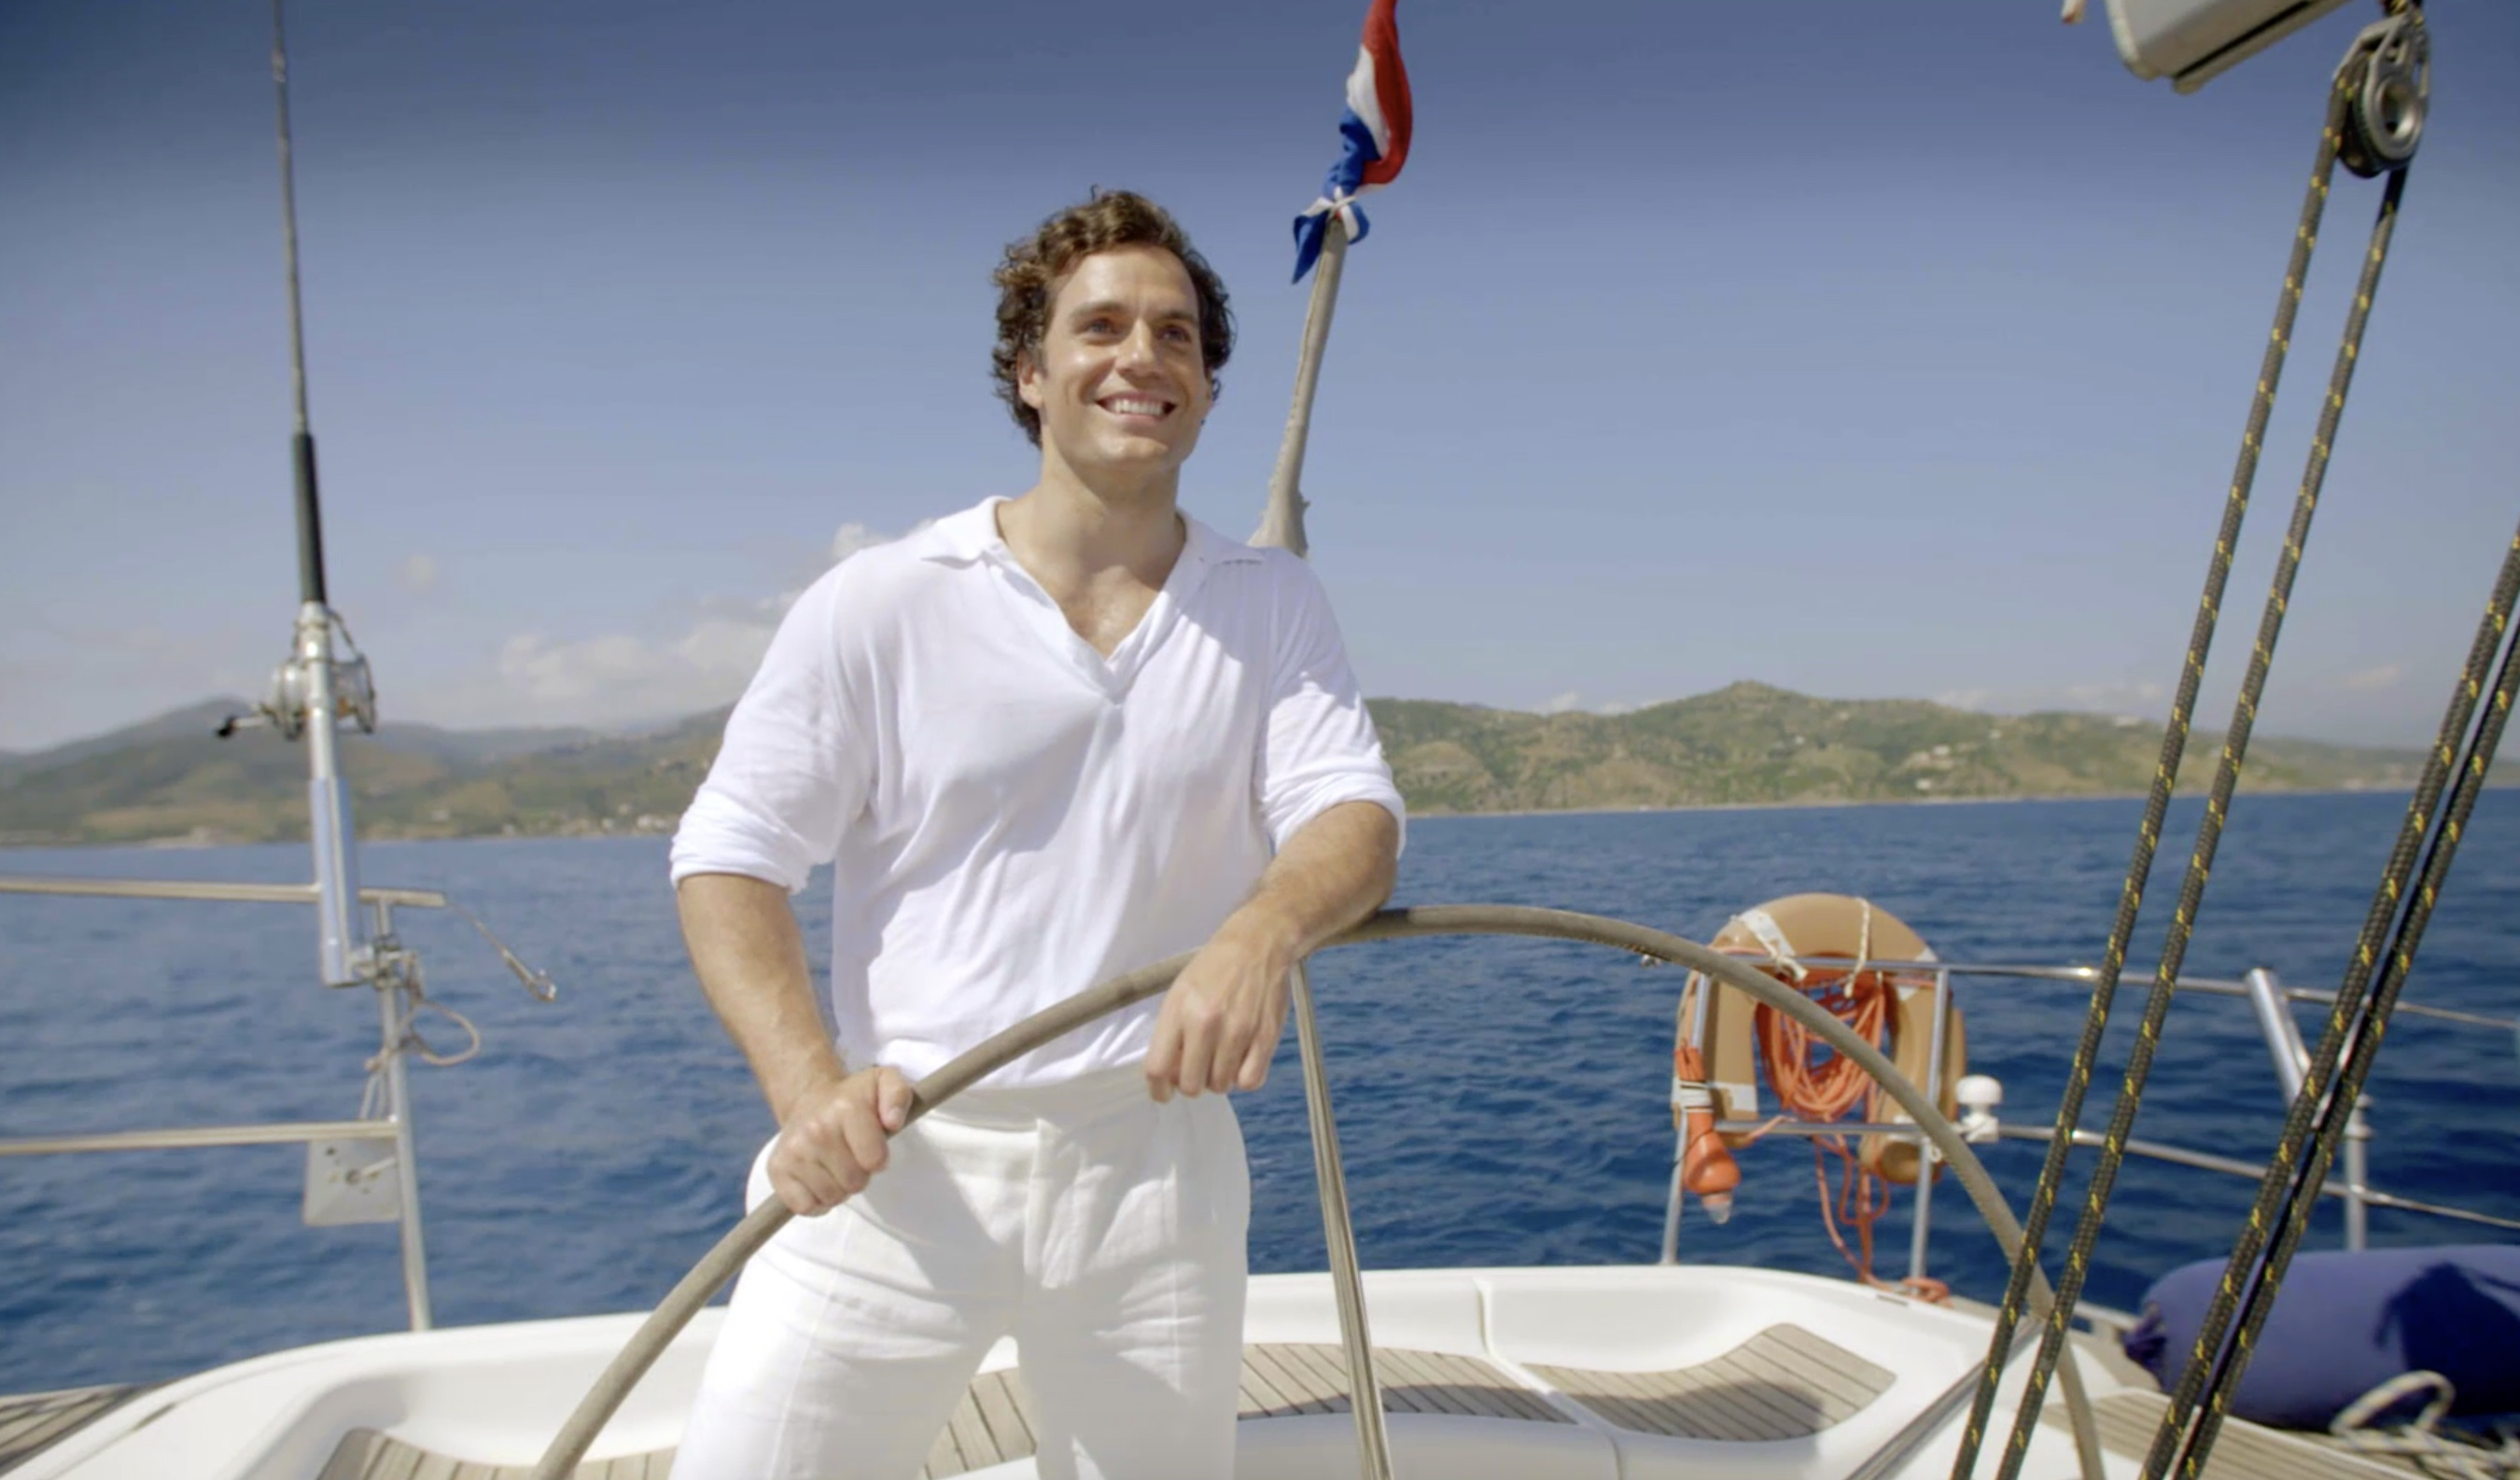 Discover Henry Cavill's New Partnership and Innovative Hydration Wellness Campaign with No.1 Rosemary Water